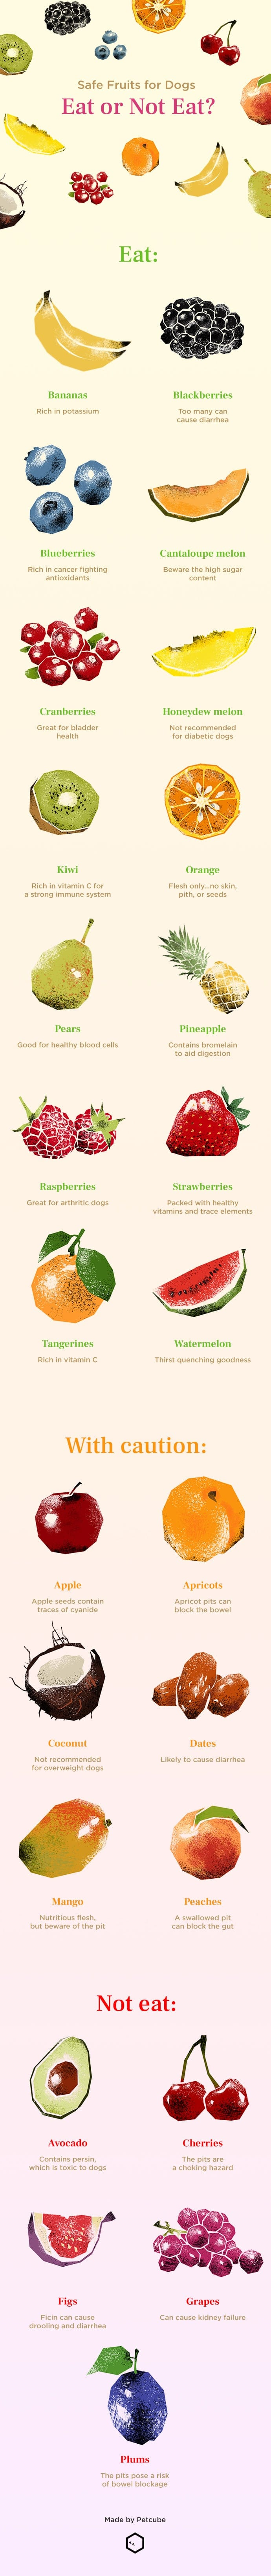 fruits for dogs infographic